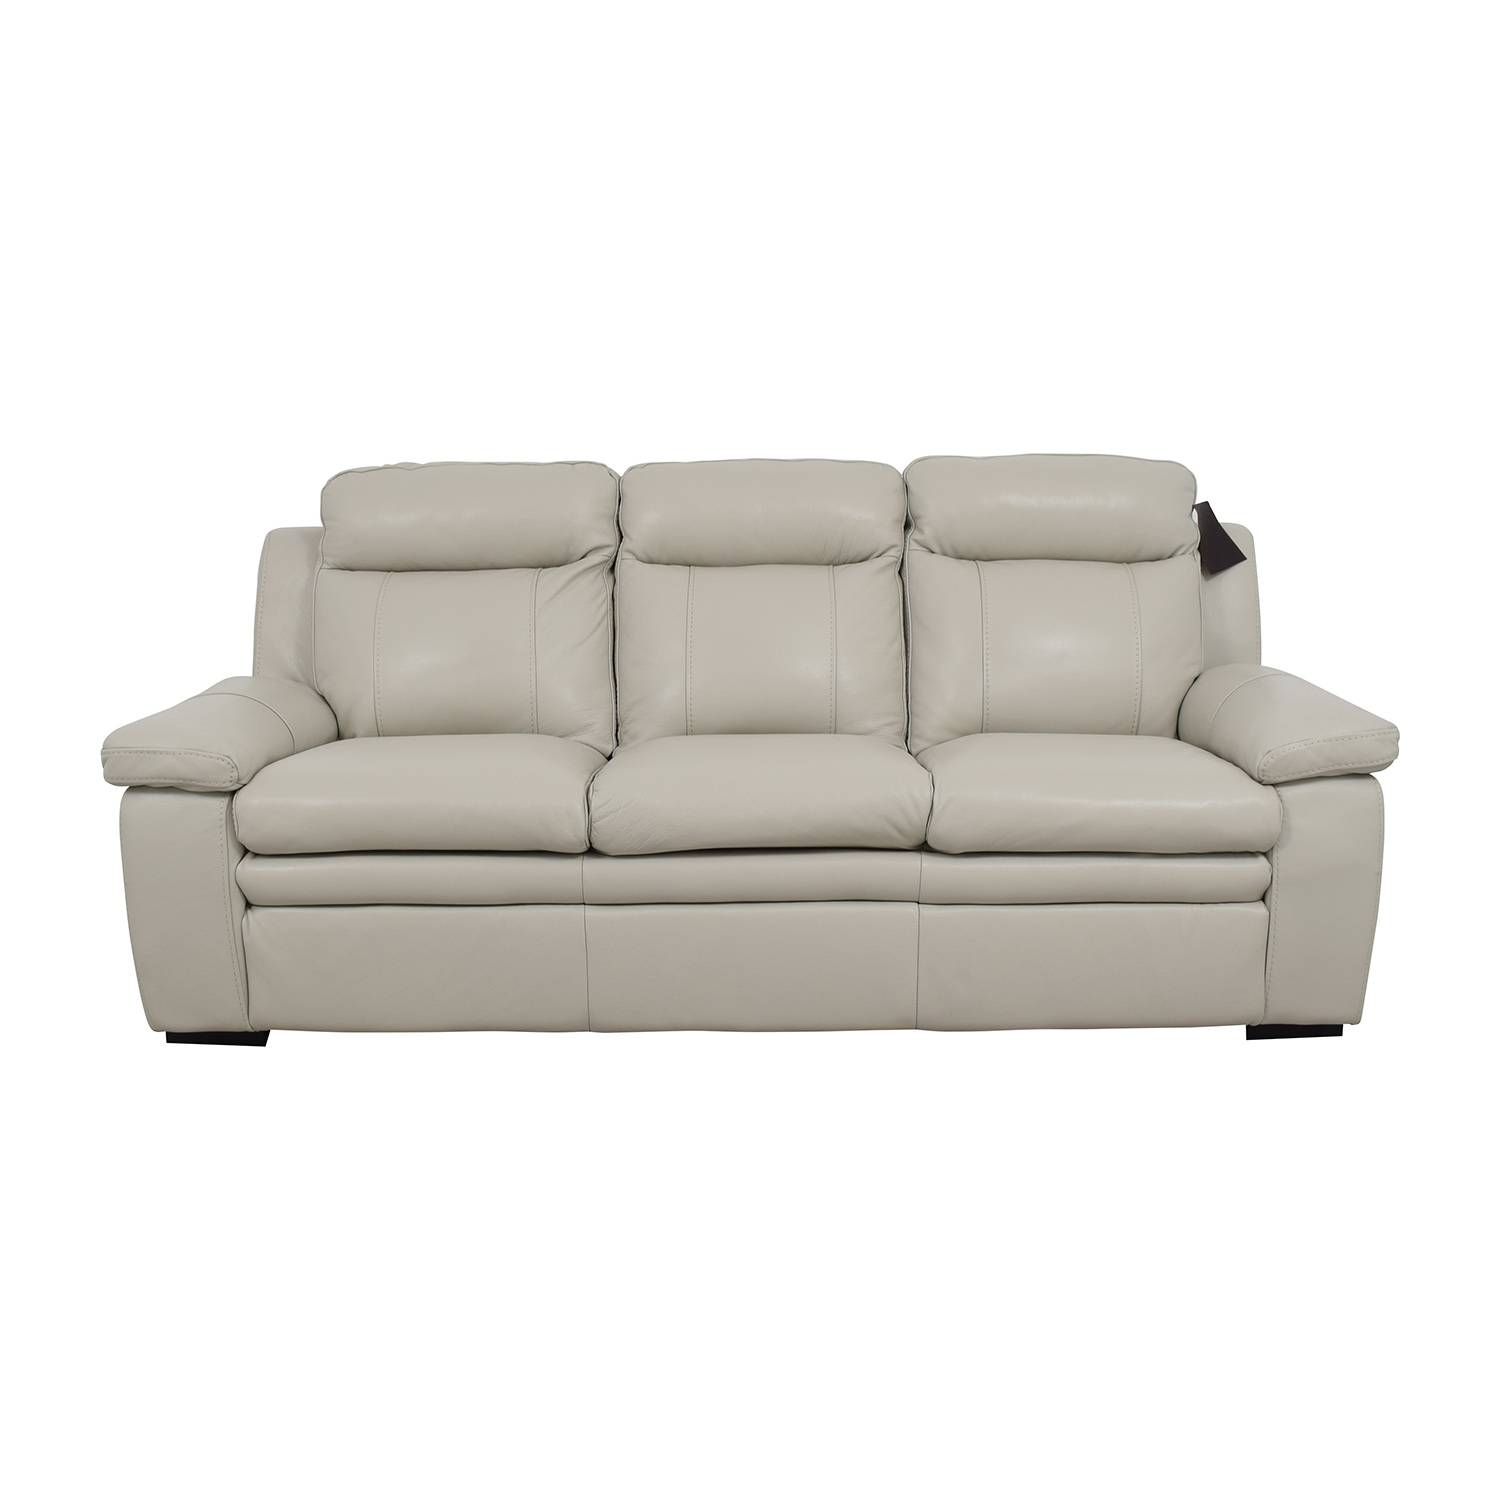 67% Off   Macy's Macy's Zane White Leather Sofa / Sofas Regarding Macys Sofas (Photo 23 of 25)